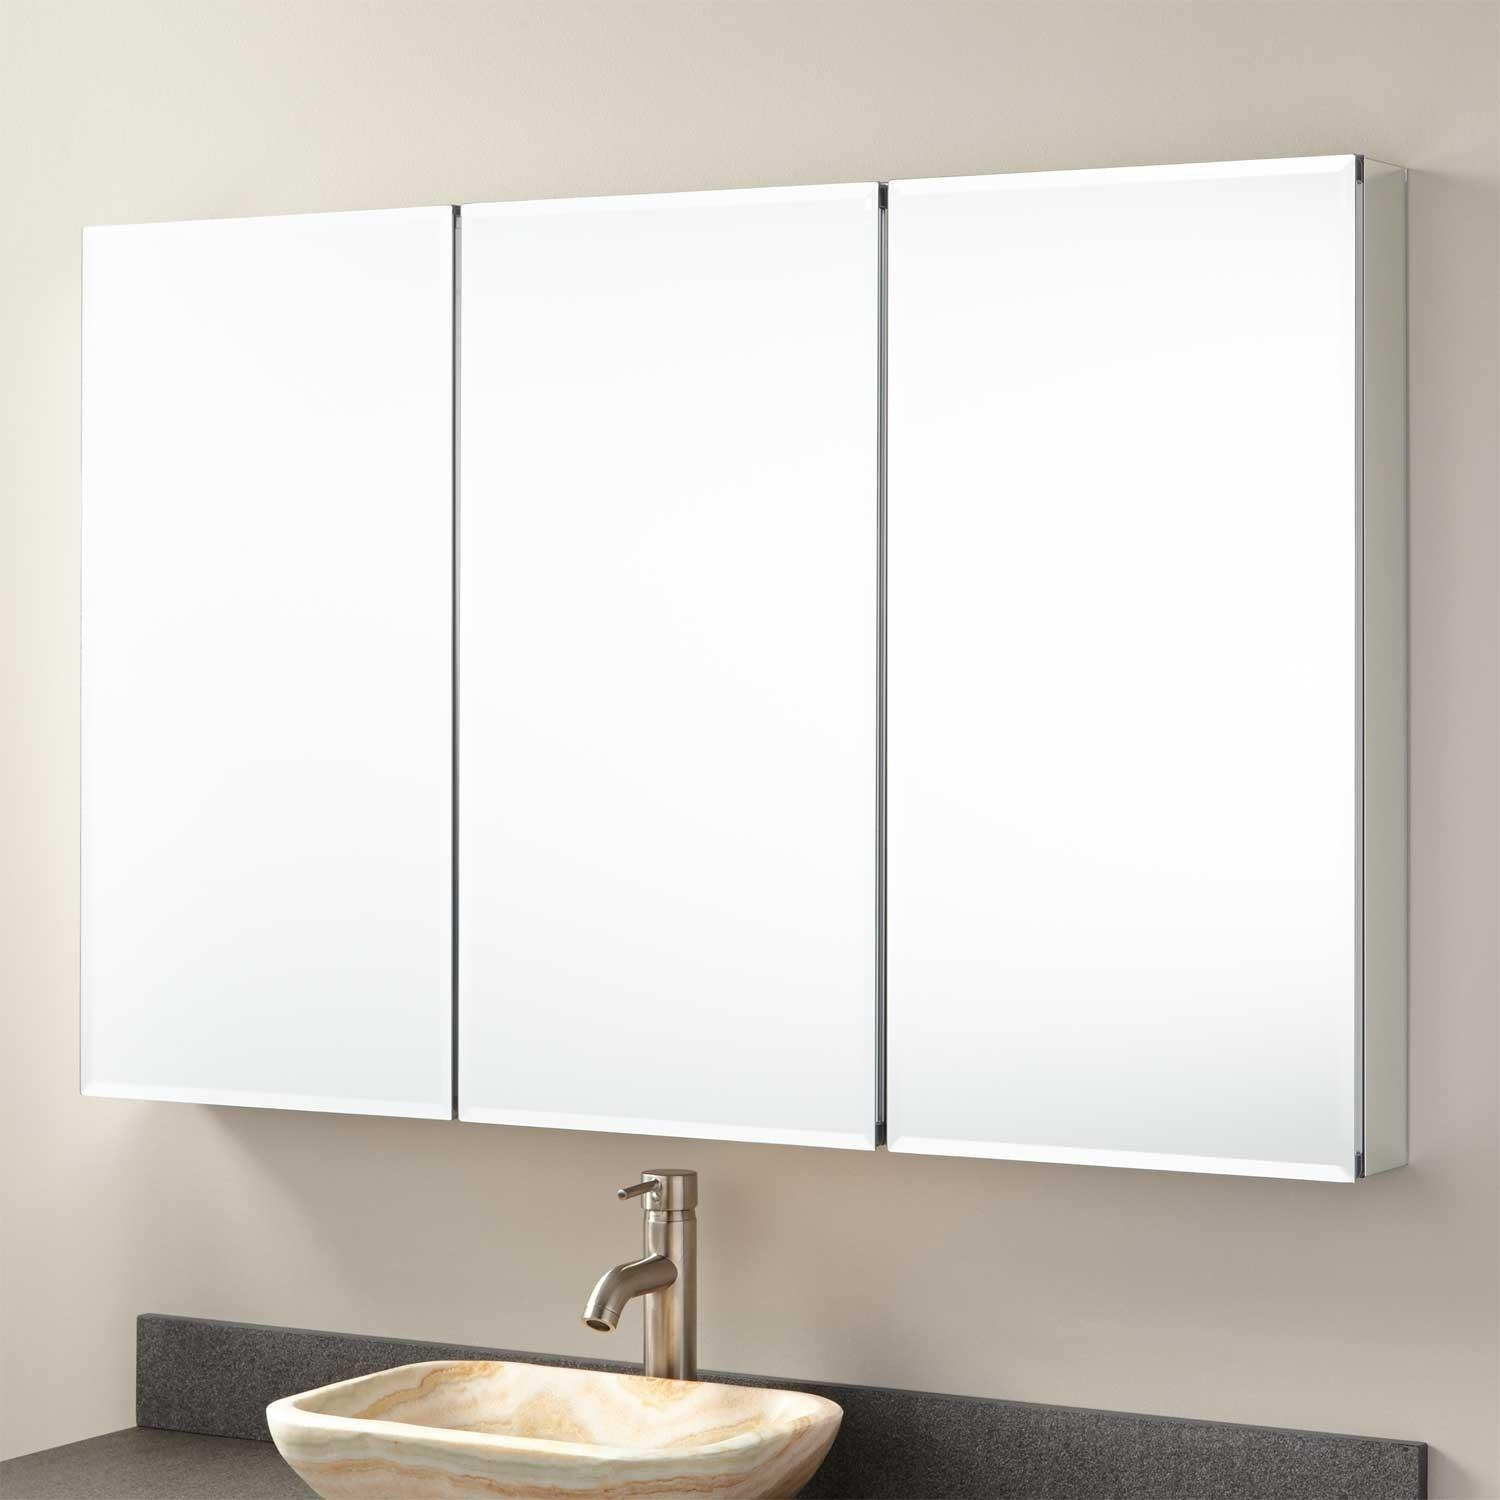 Bathroom Medicine Cabinets | Signature Hardware Regarding Bathroom Medicine Cabinets With Mirrors (Image 8 of 20)